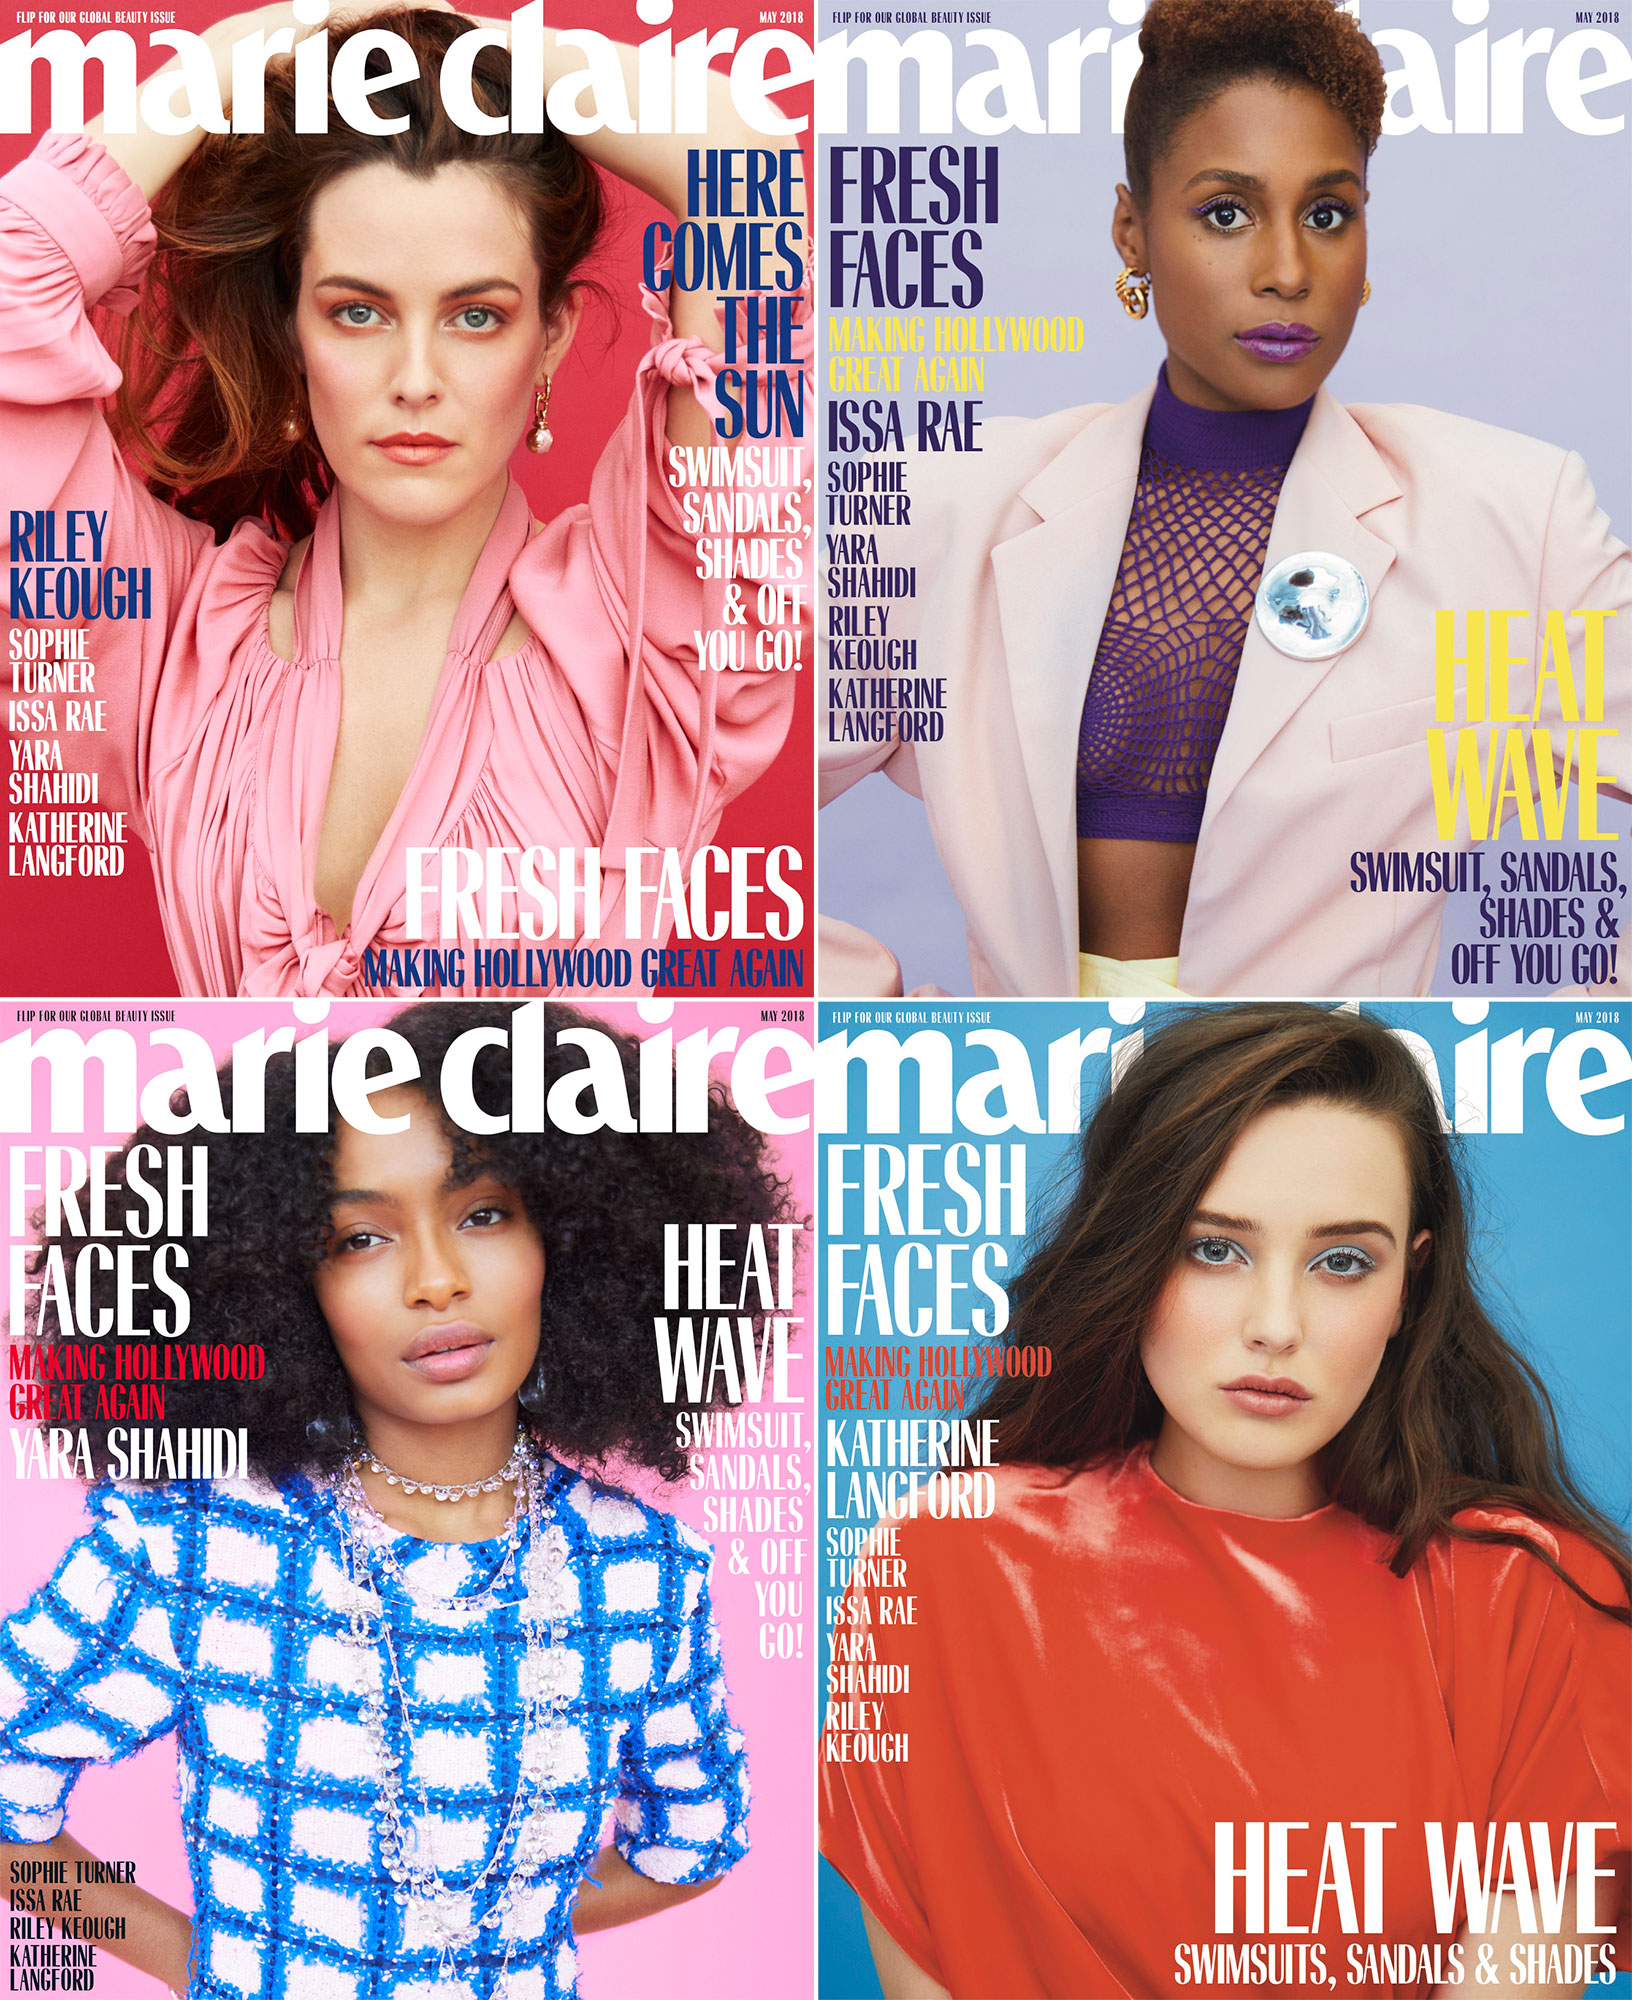 Marie Claire coversCredit: Erik Madigan Heck for Marie Claire